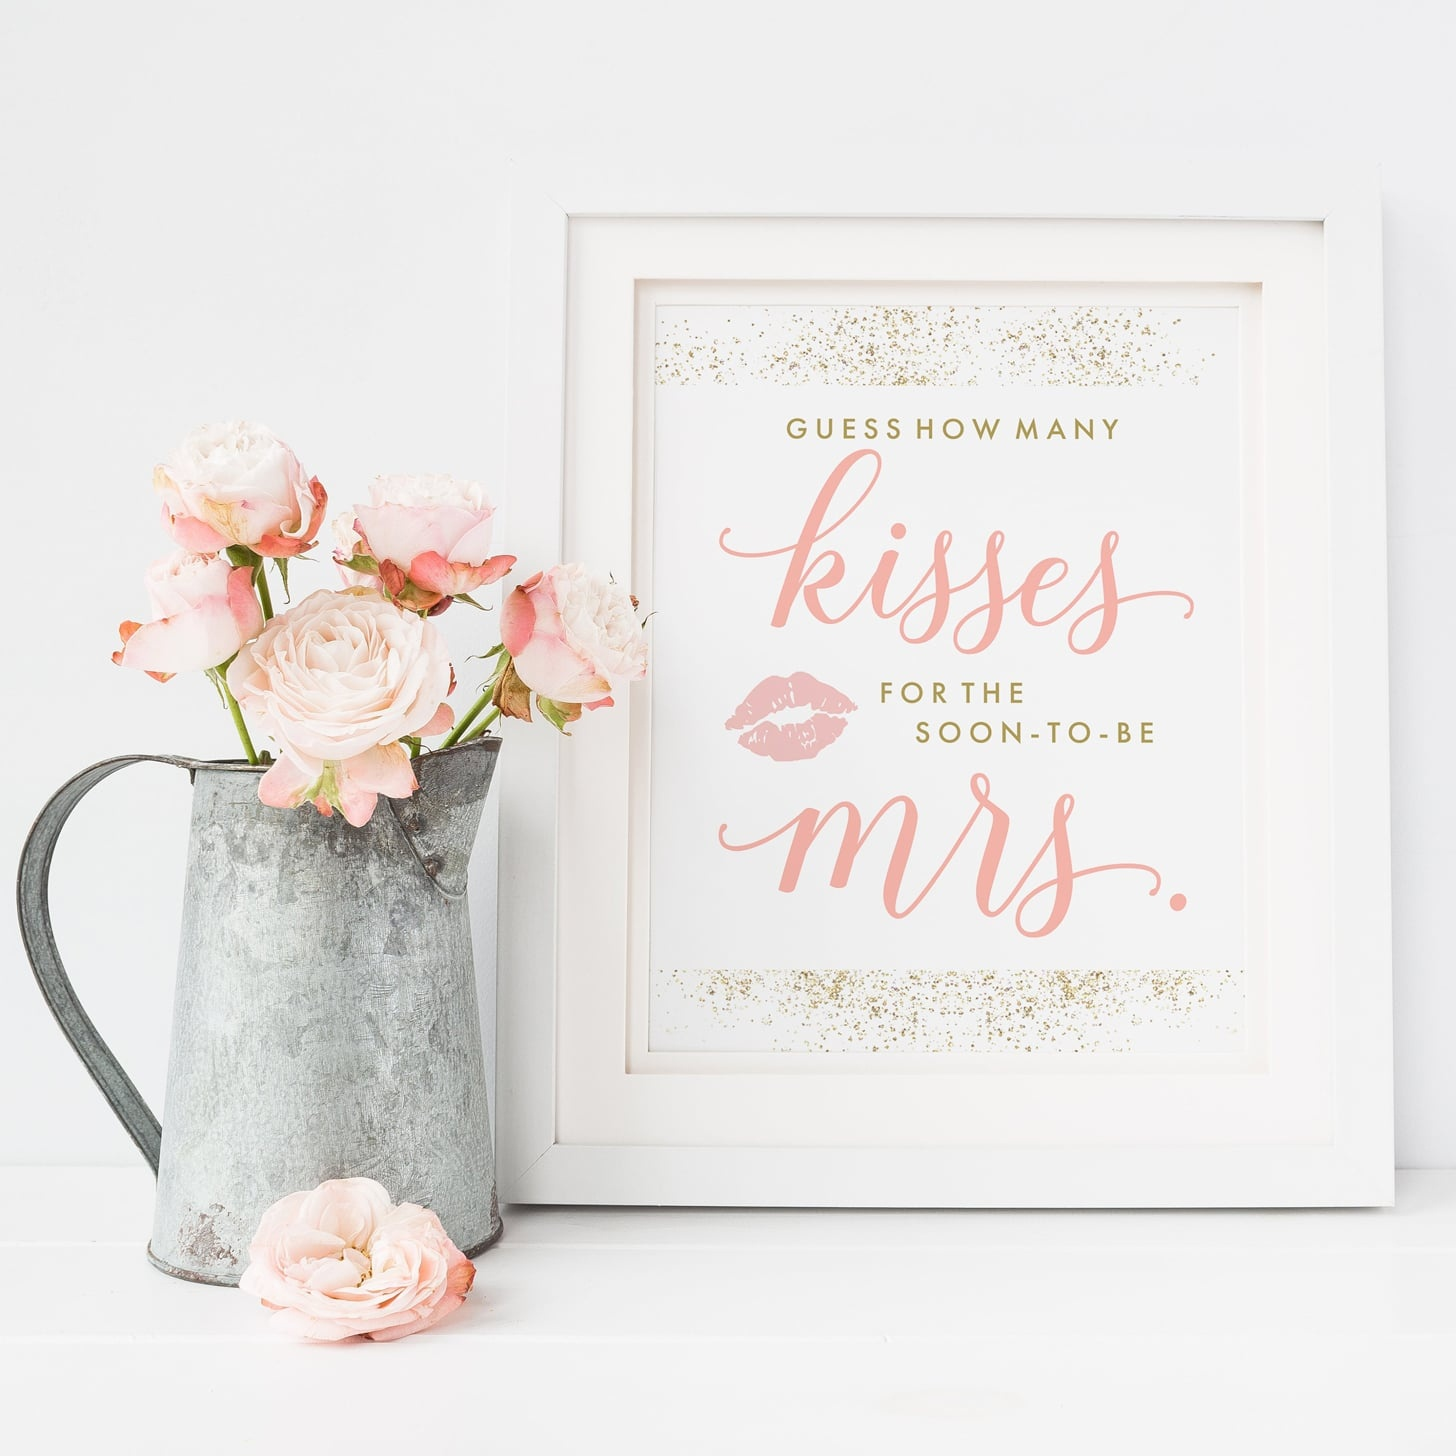 Guess How Many Kisses For The Soon-To-Be Mrs. Printable Game - How Many Kisses Game Free Printable